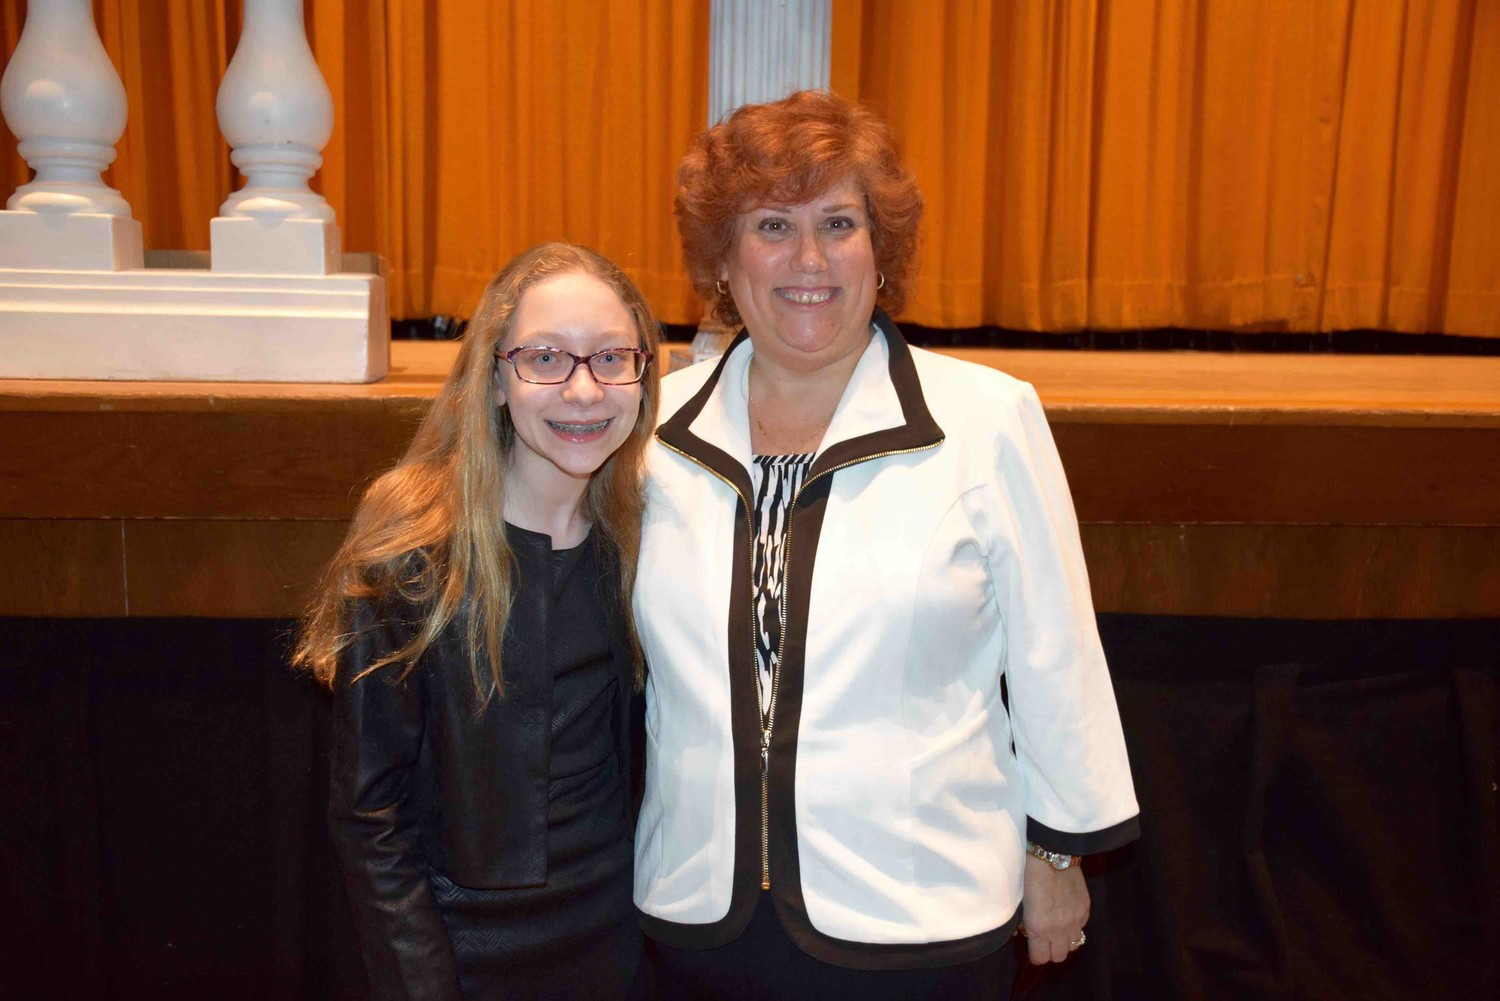 Lynbrook South Middle School student Rachel Edelstein, left, was presented with the Honorary Life Membership Award by Lynbrook SEPTA member Mindy Ross-Knaster during the ceremony.